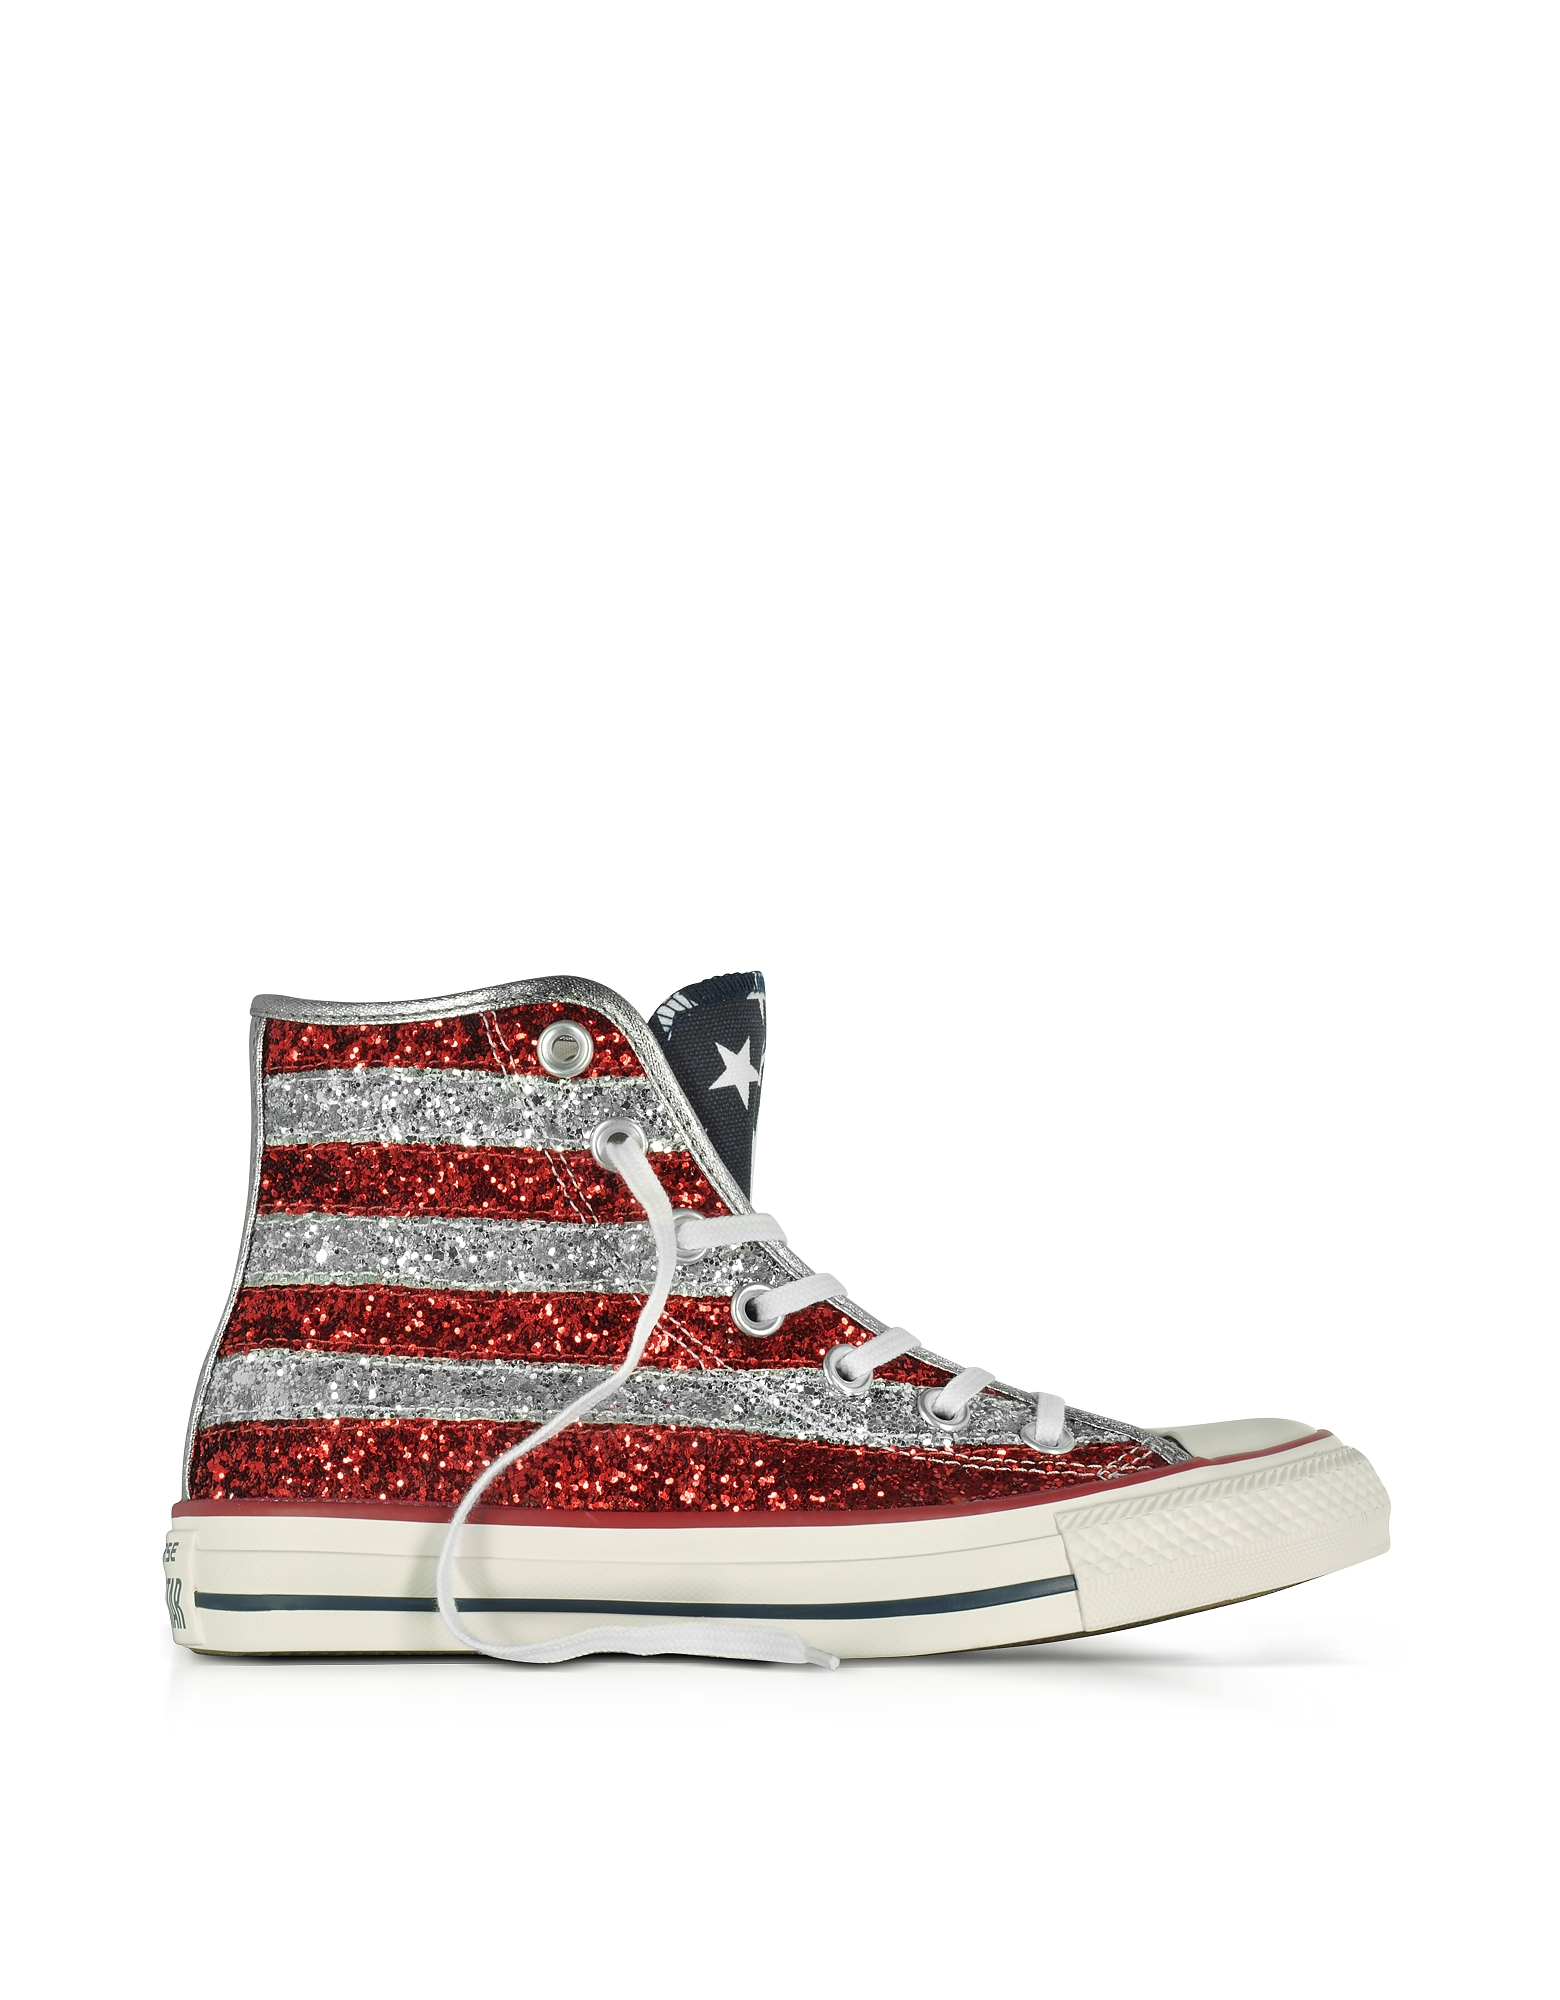 Converse Limited Edition Shoes, Chuck Taylor All Star Hi Silver and Red Glitter Sneakers